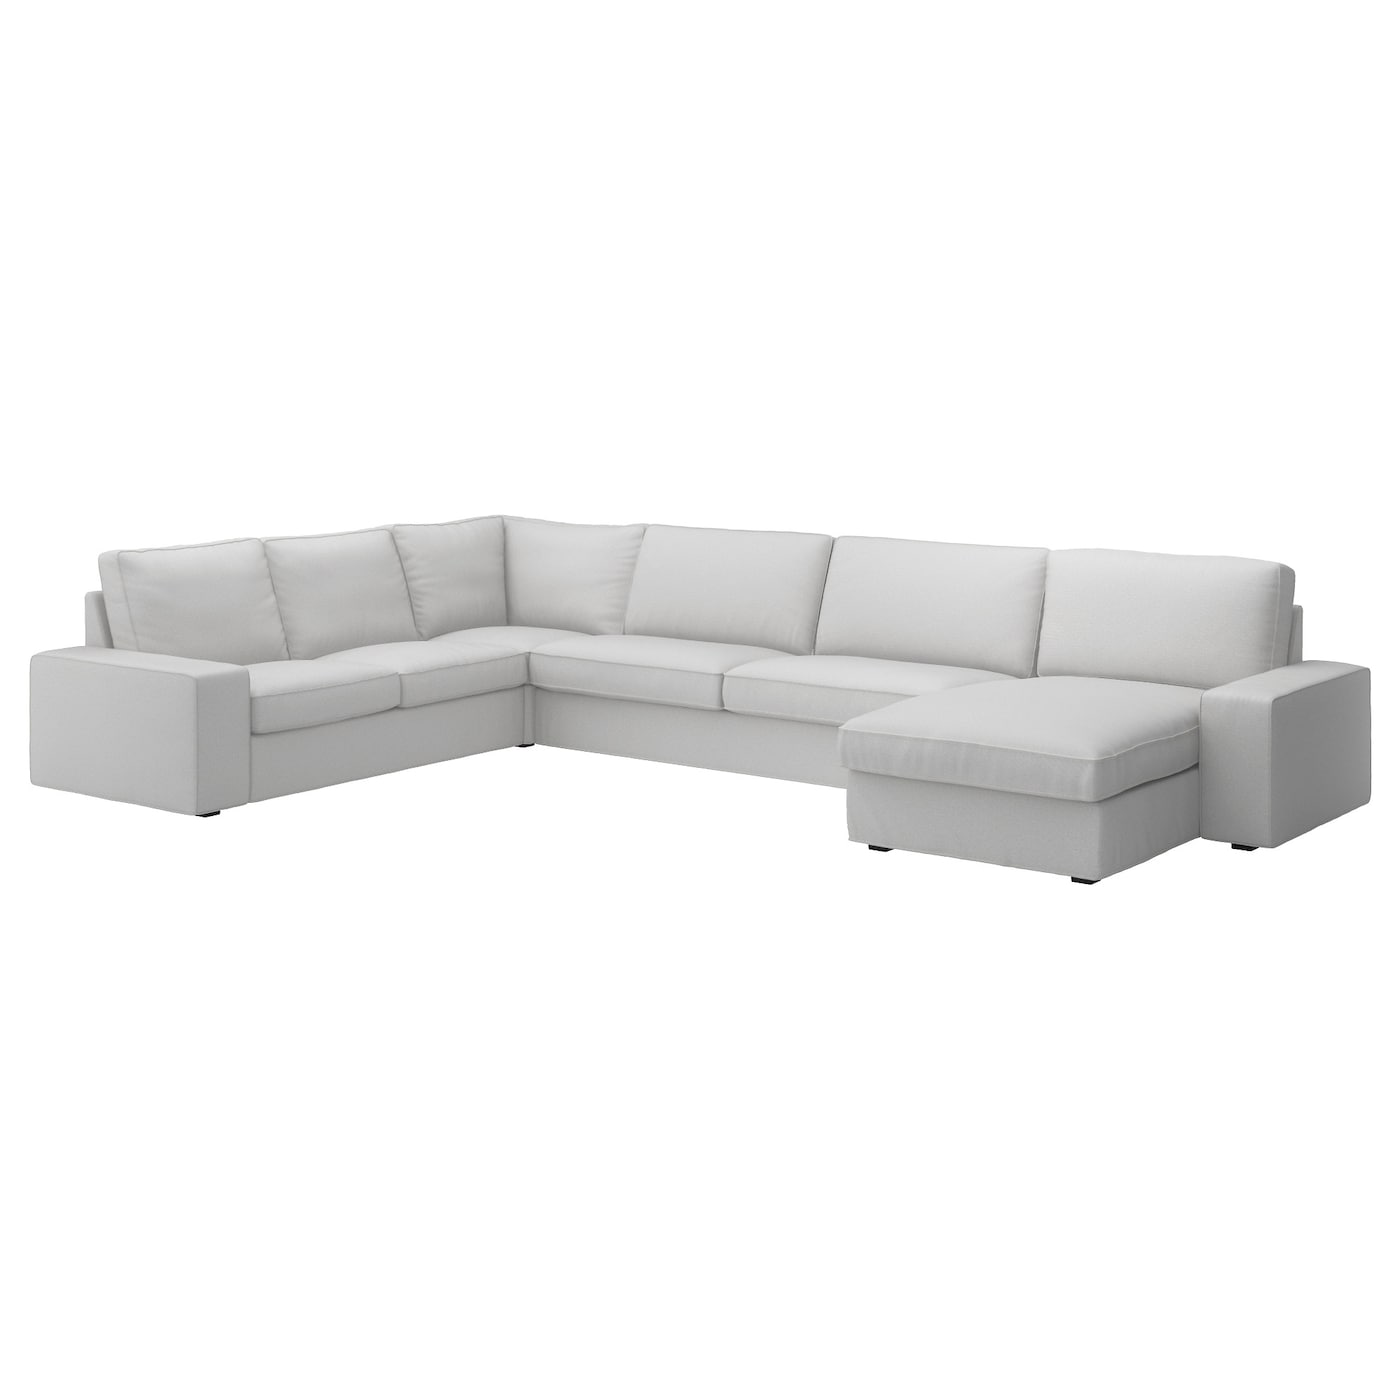 Ikea corner sofa friheten corner sofa bed with storage for Chaise longue torino